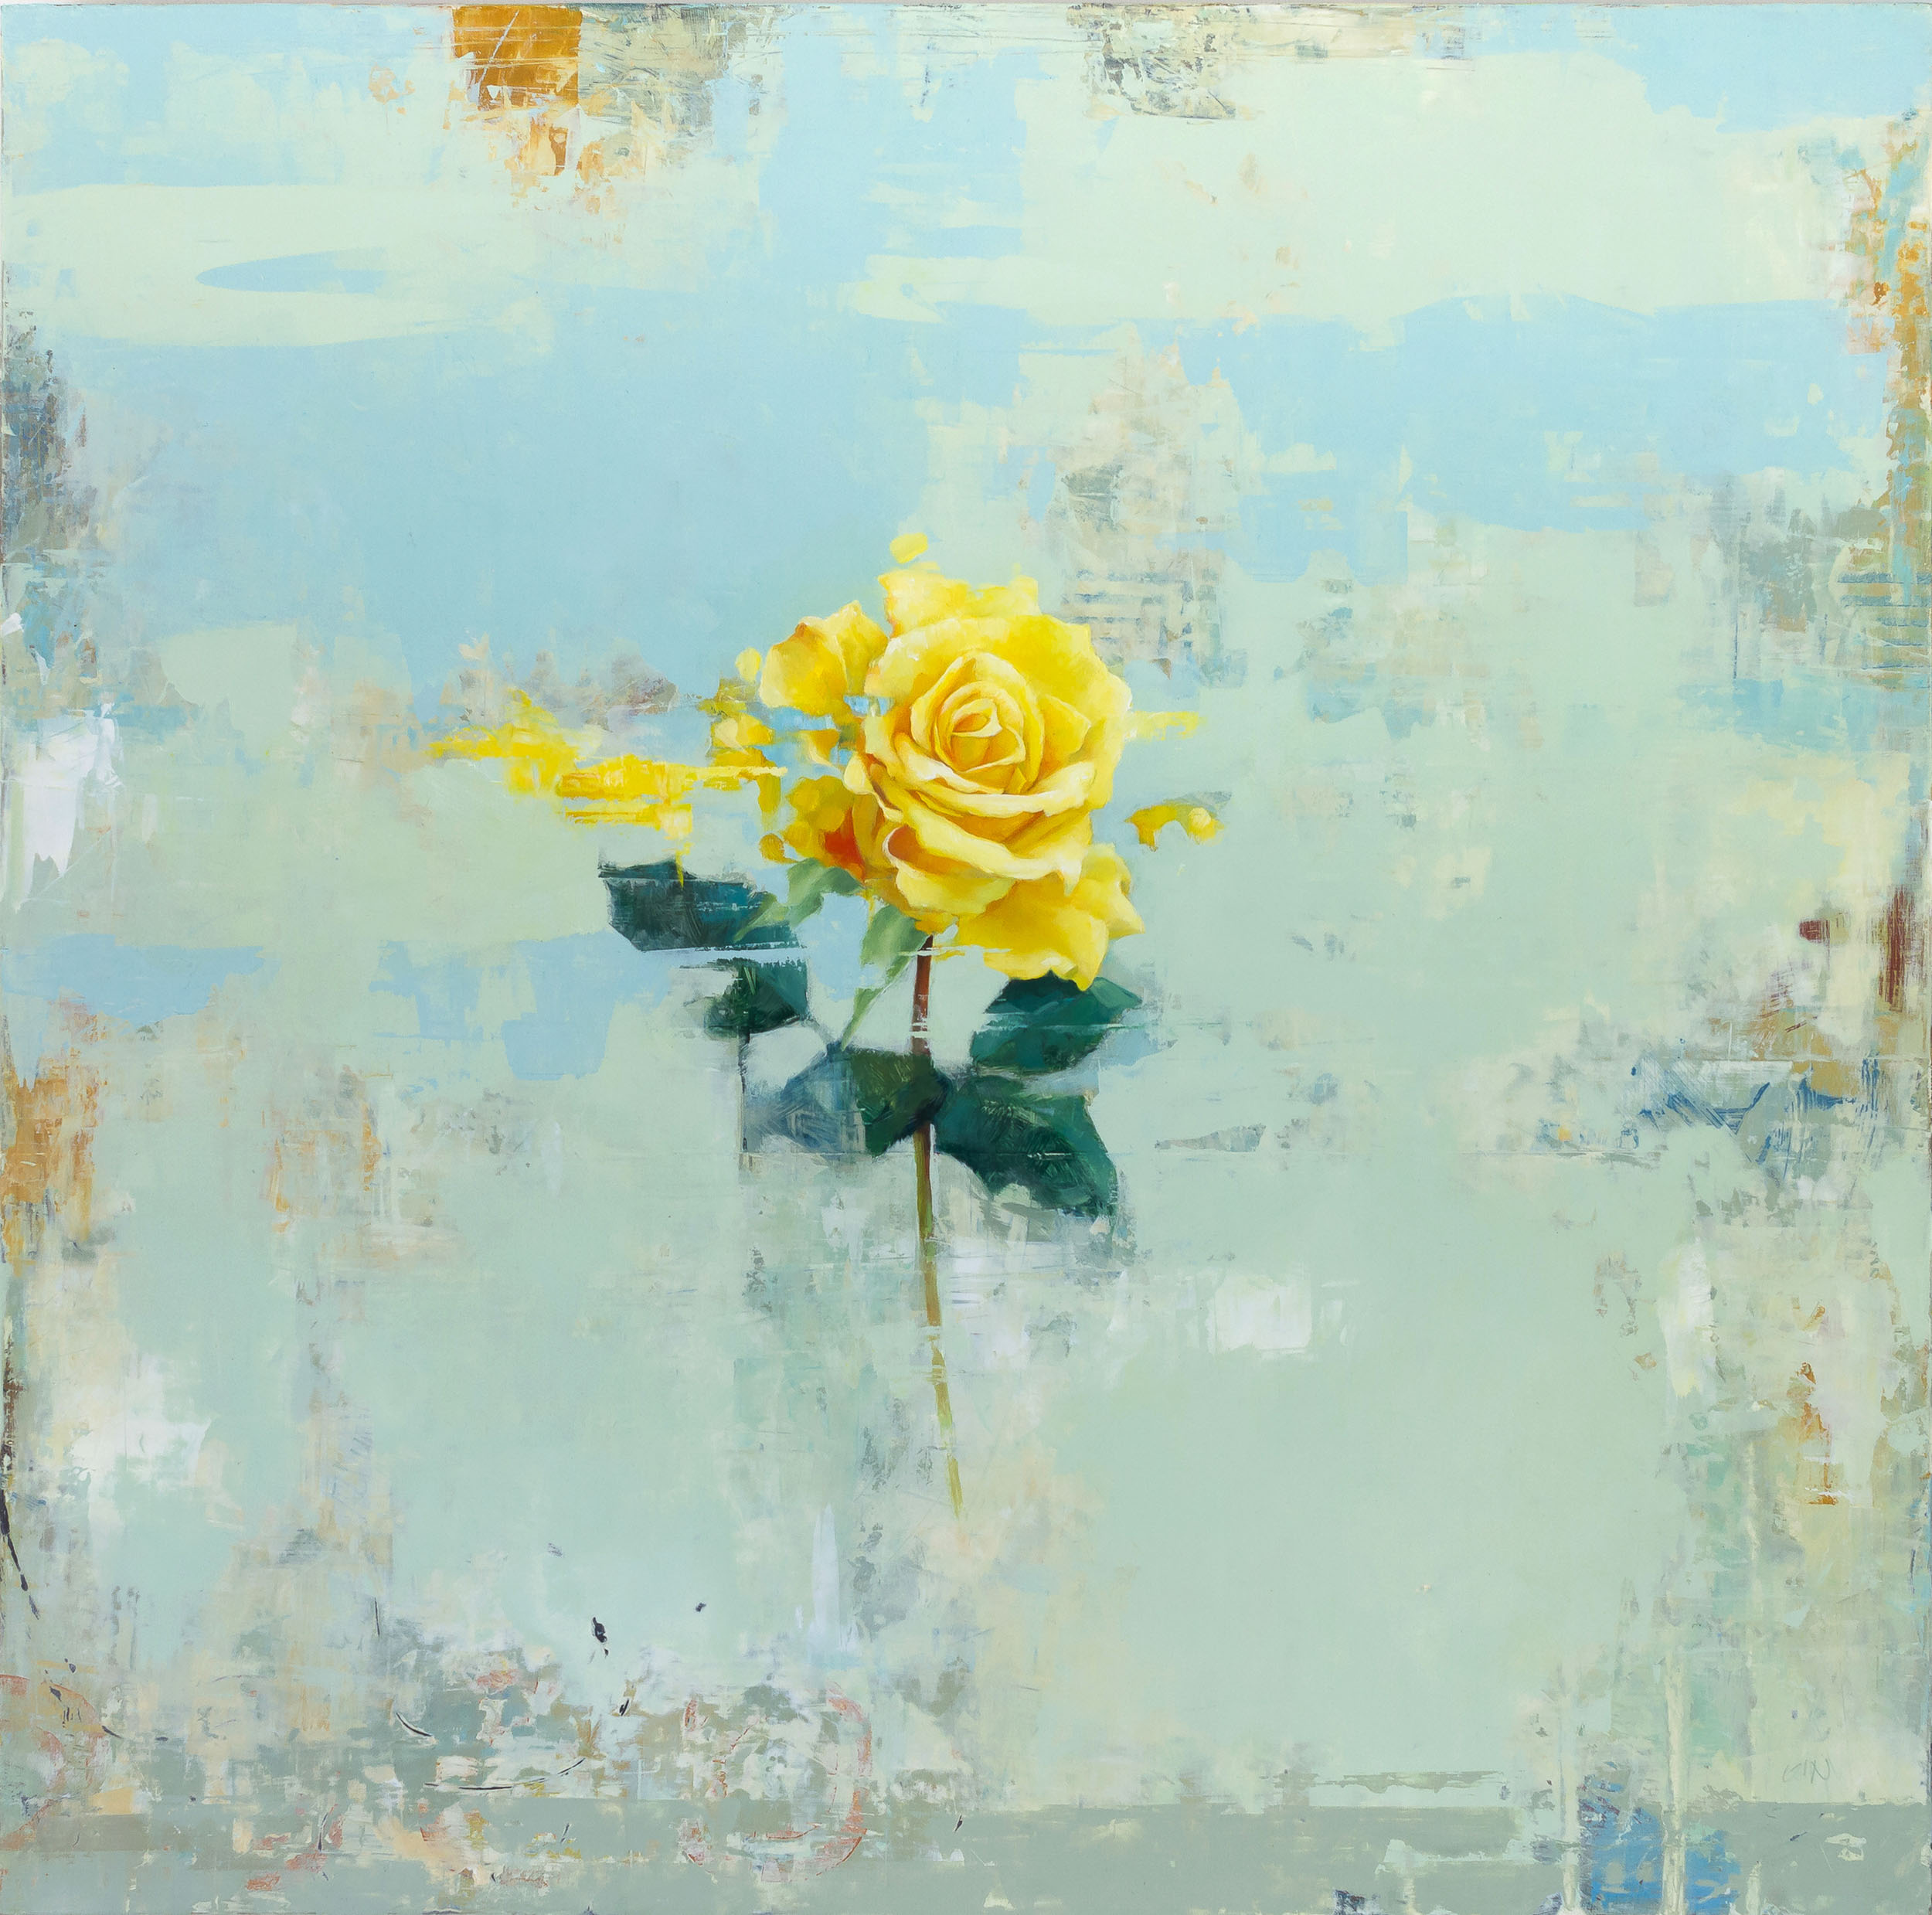 Yellow Rose  2019 oil on panel 20 x 20 inches   Sold